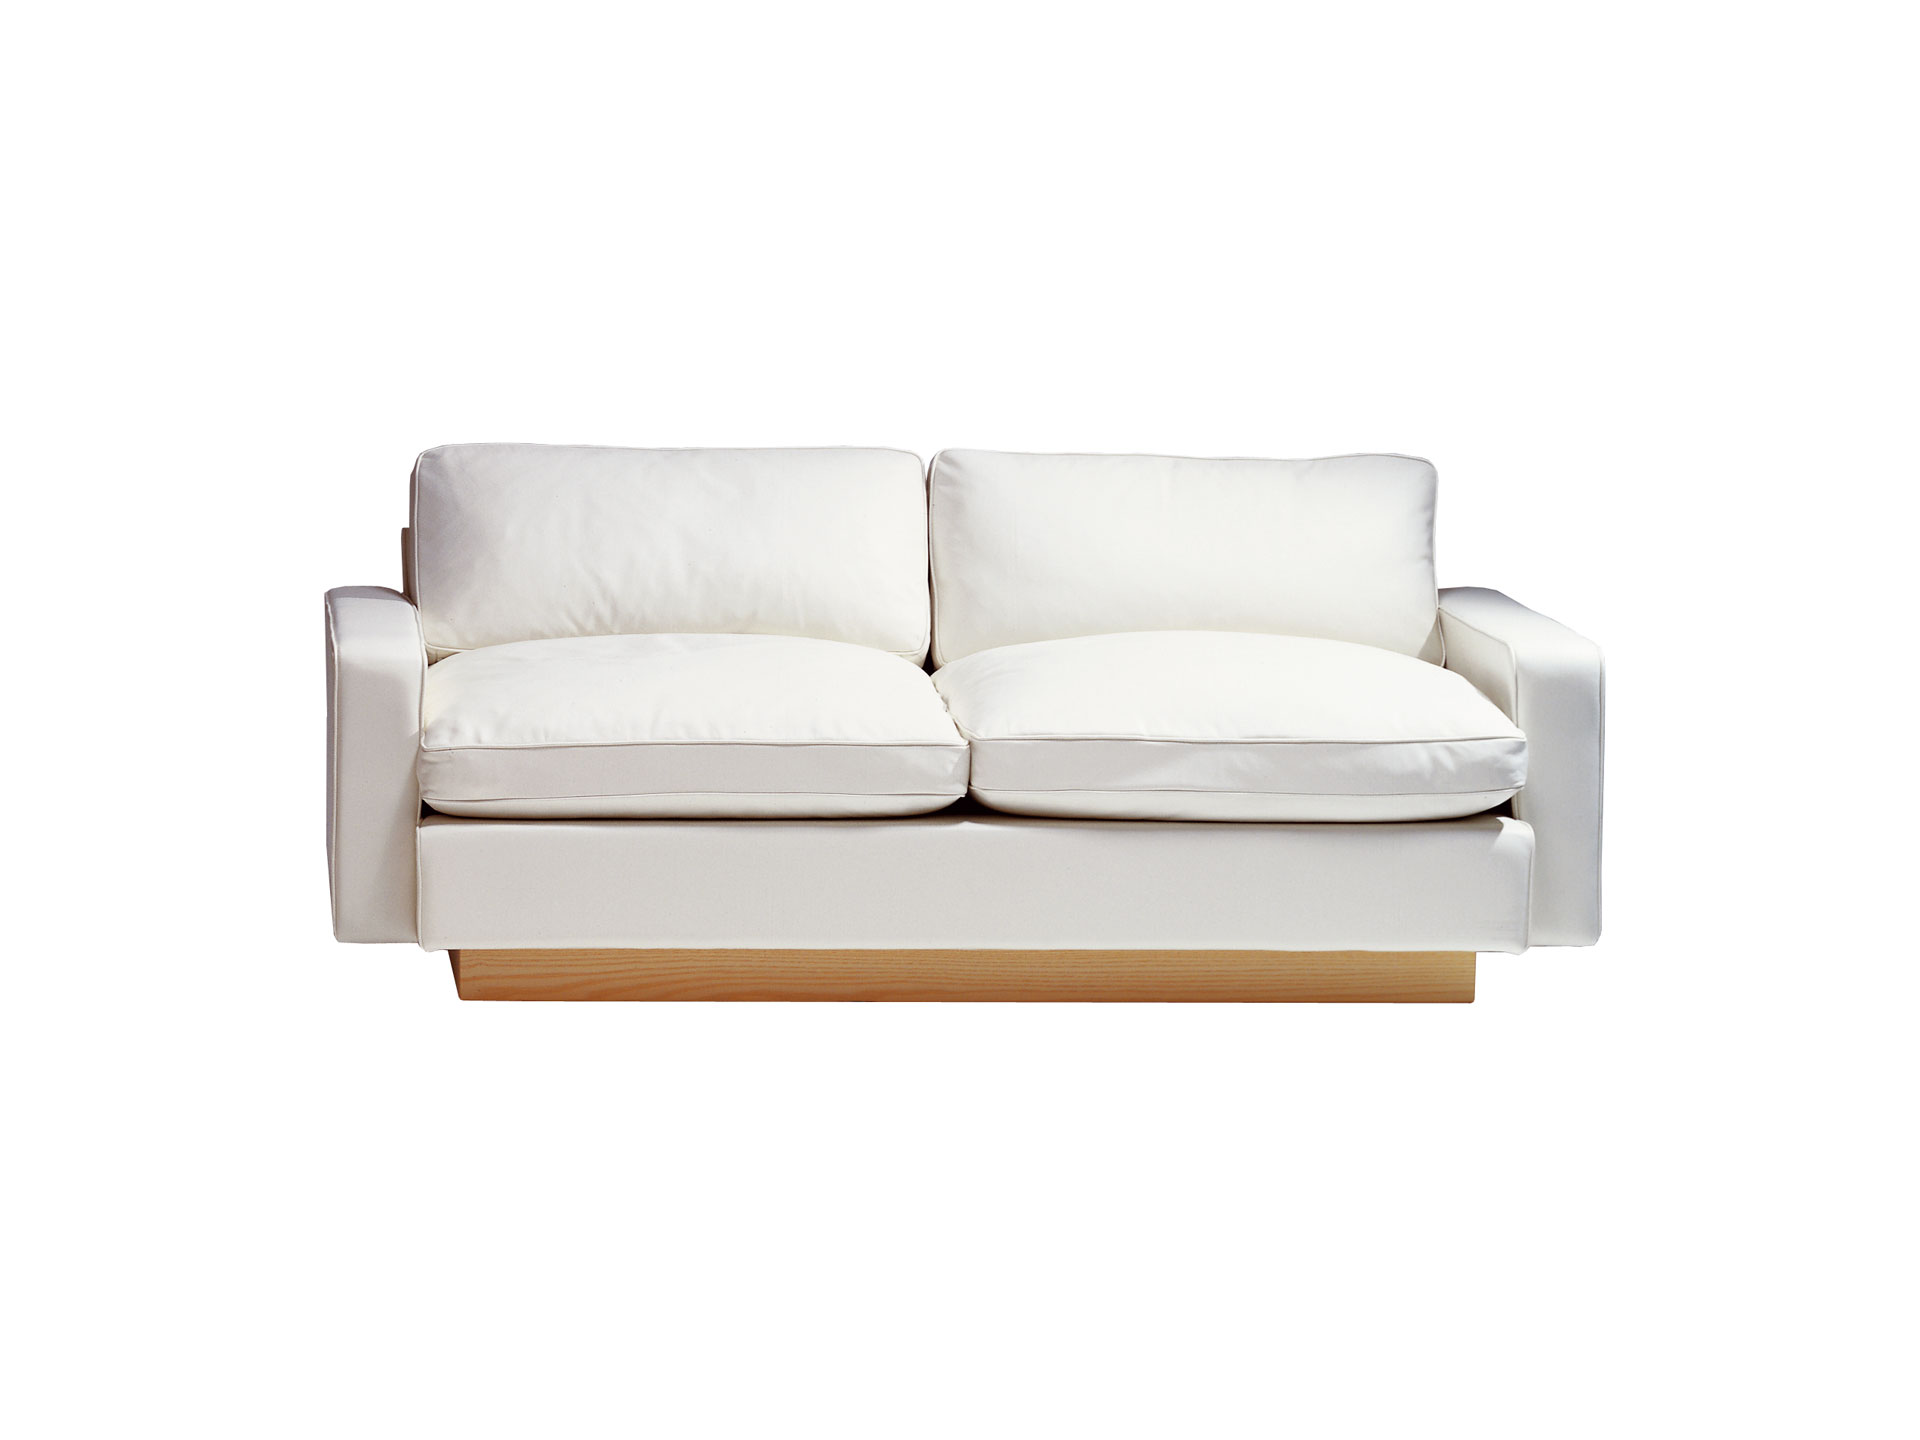 Pleasant Ben Af Schulten Sofa 589 590 Caraccident5 Cool Chair Designs And Ideas Caraccident5Info